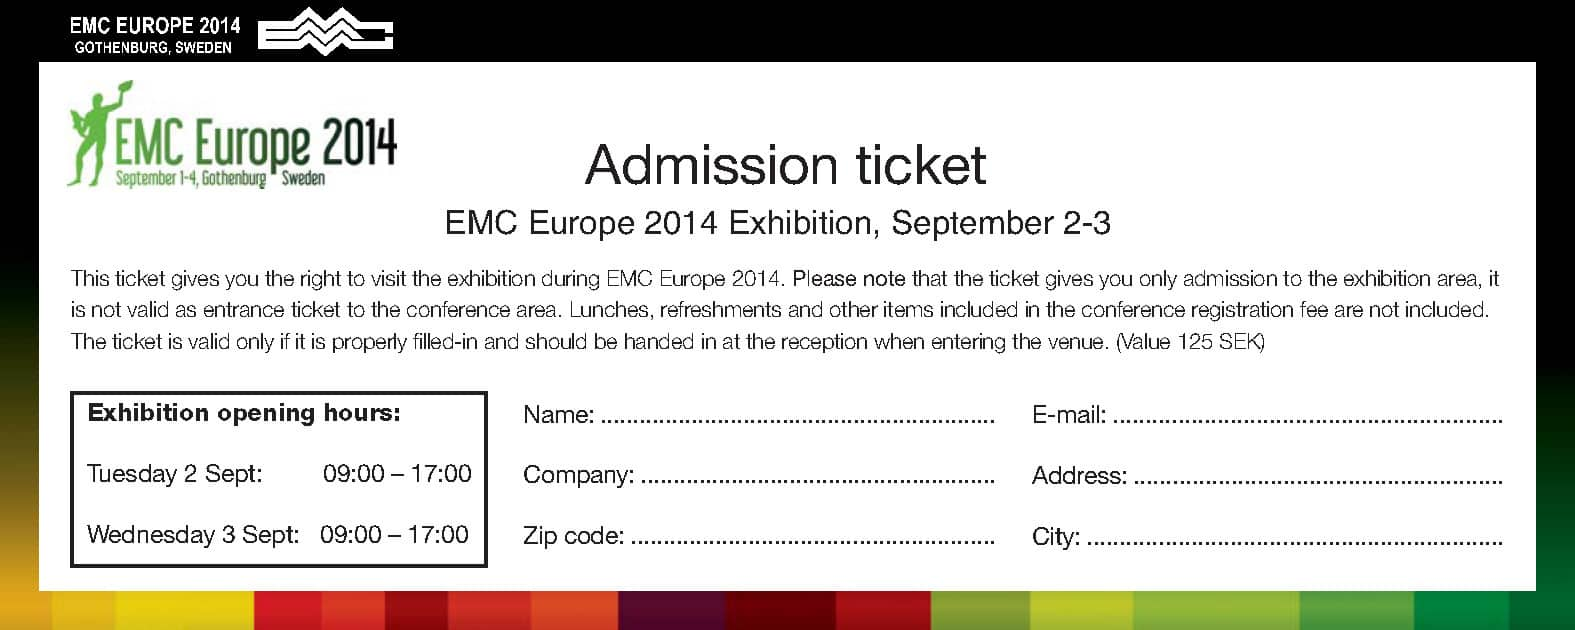 admission ticket template 4